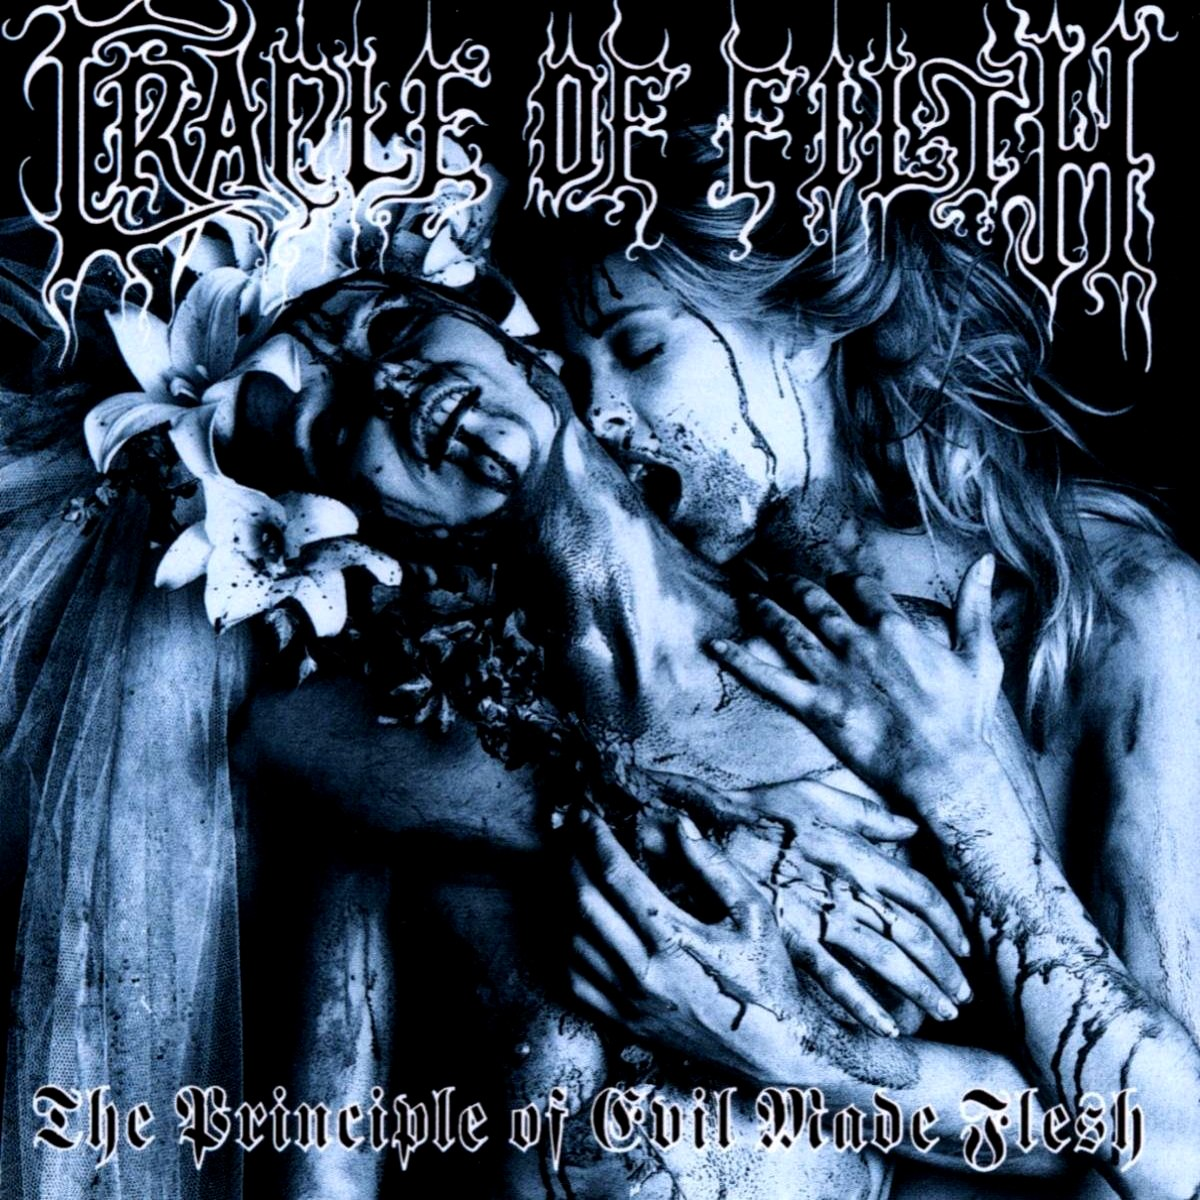 Review for Cradle of Filth - The Principle of Evil Made Flesh